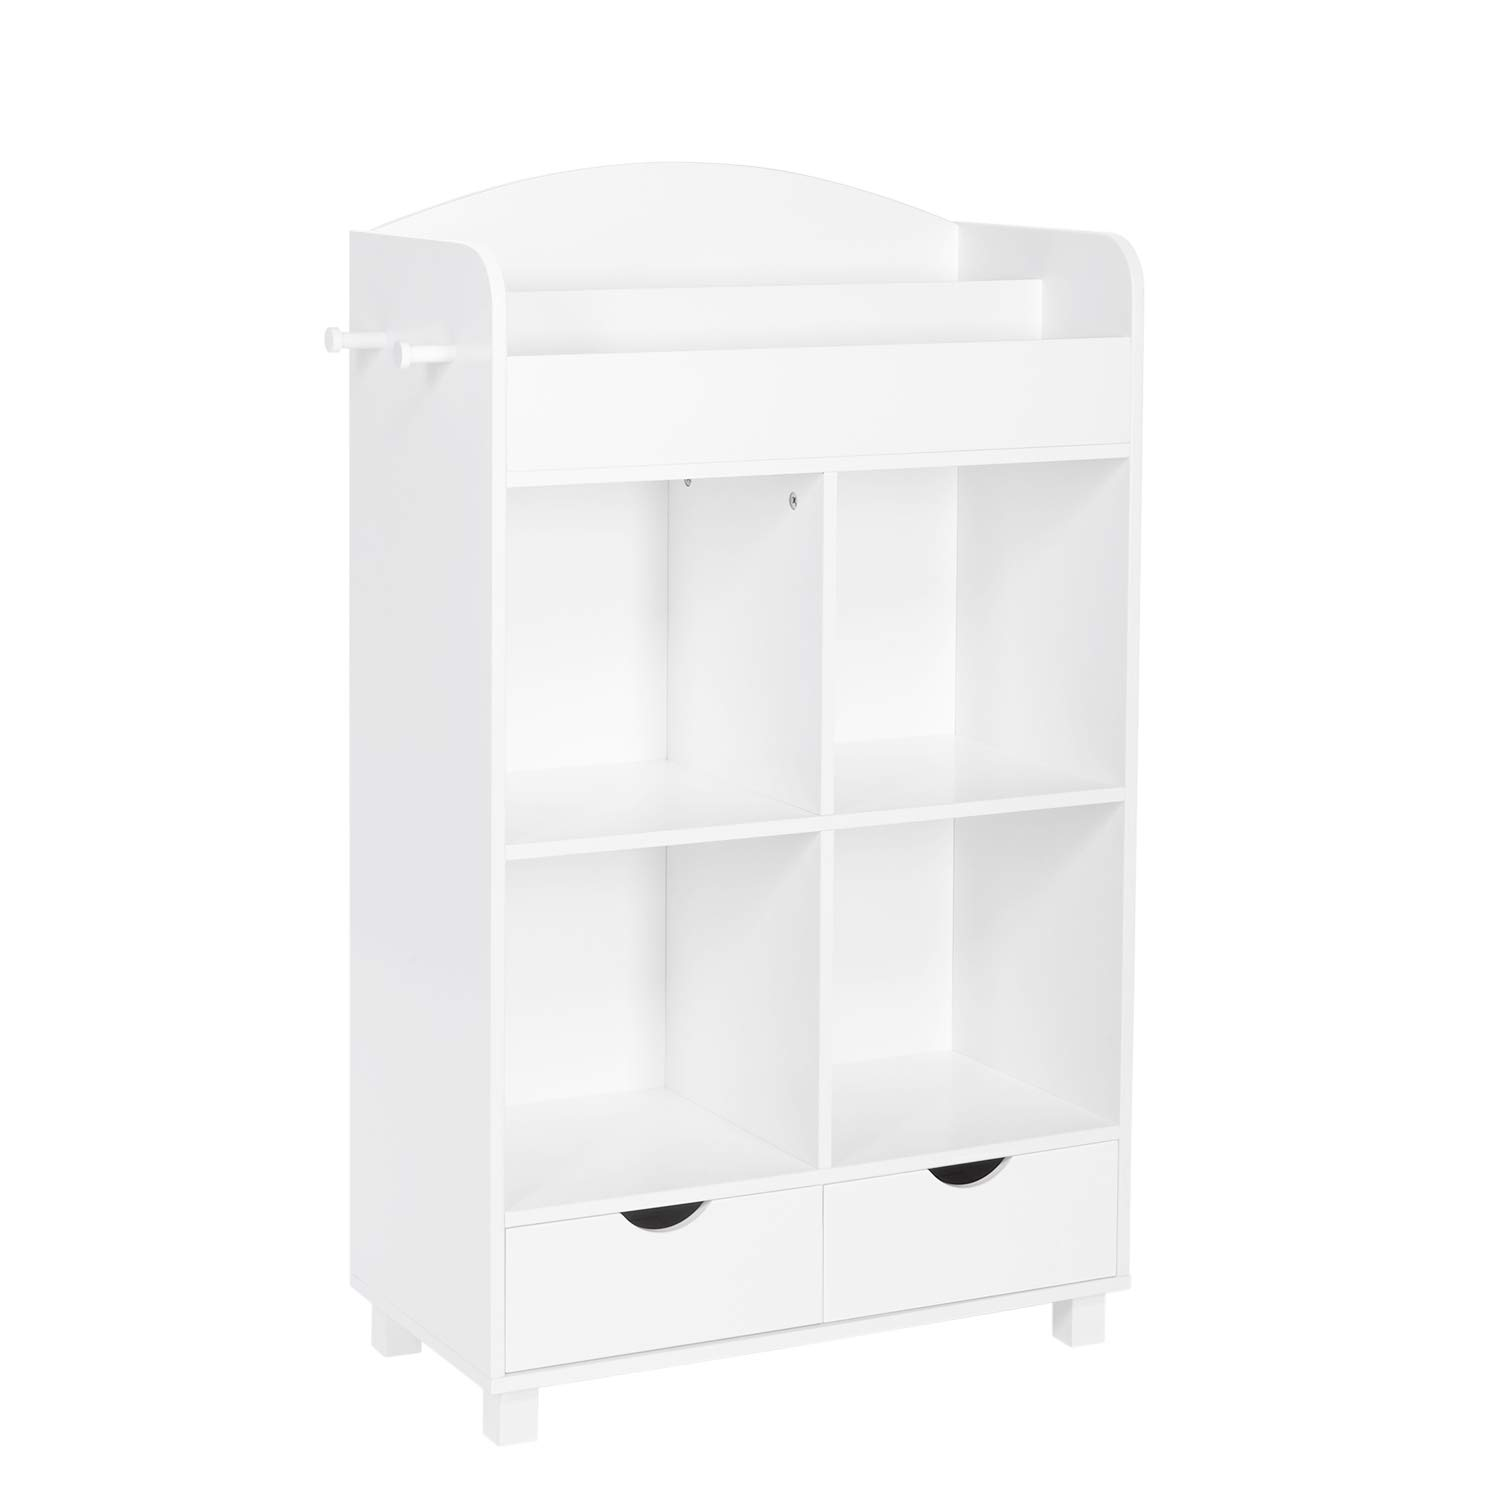 RiverRidge Home Book Nook Collection Kids Cubby Bookrack Storage Cabinet, White